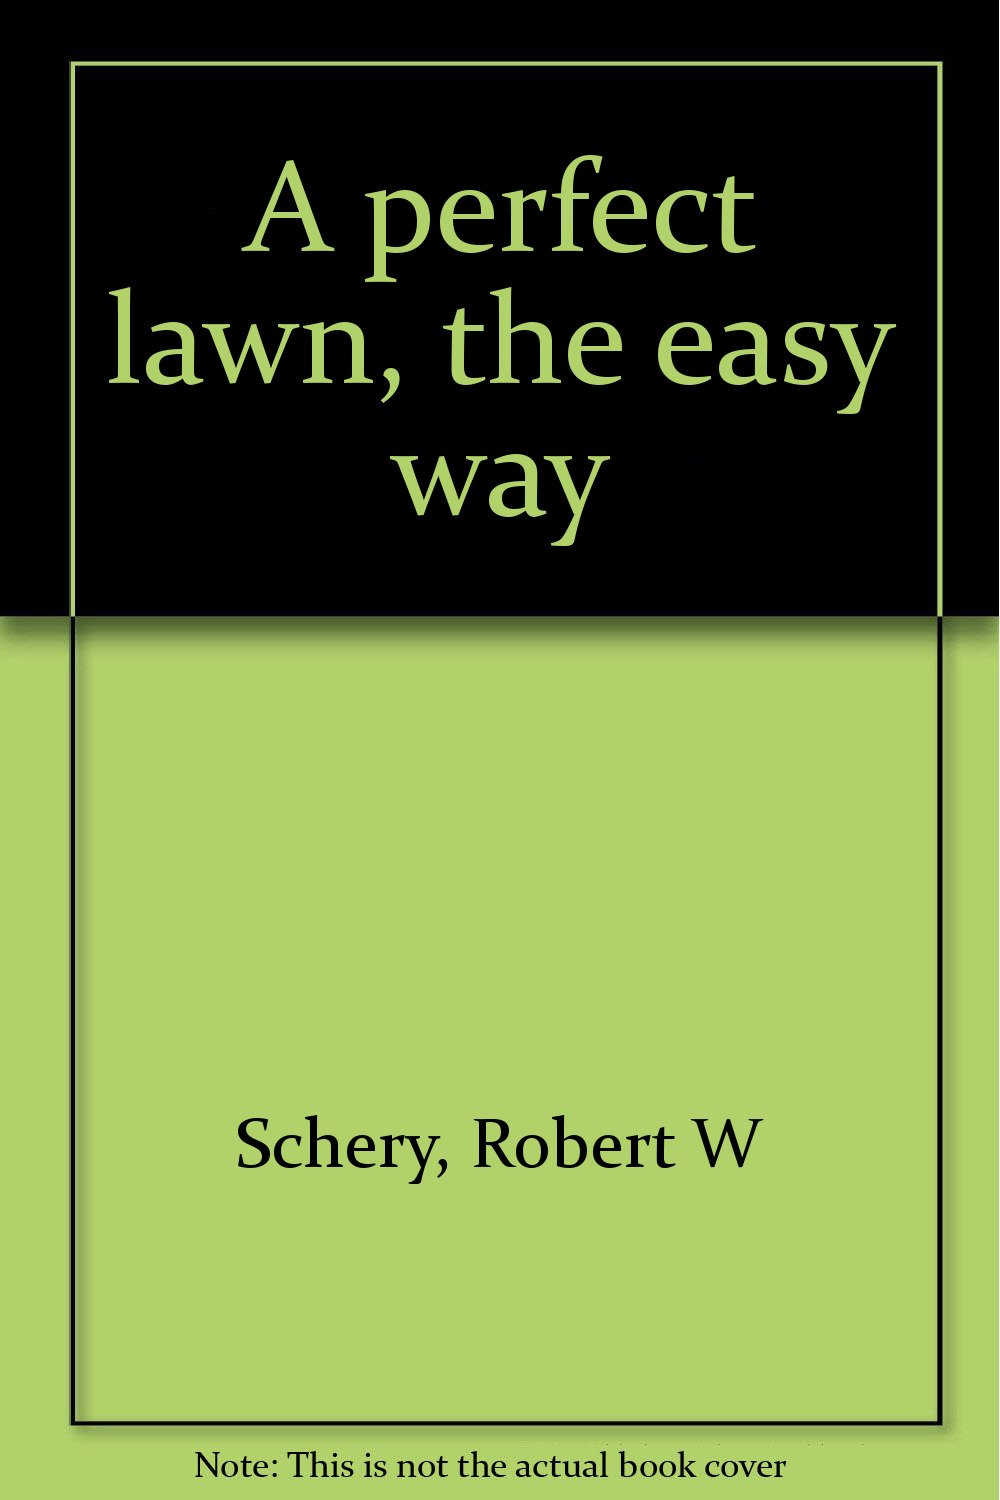 A perfect lawn, the easy way